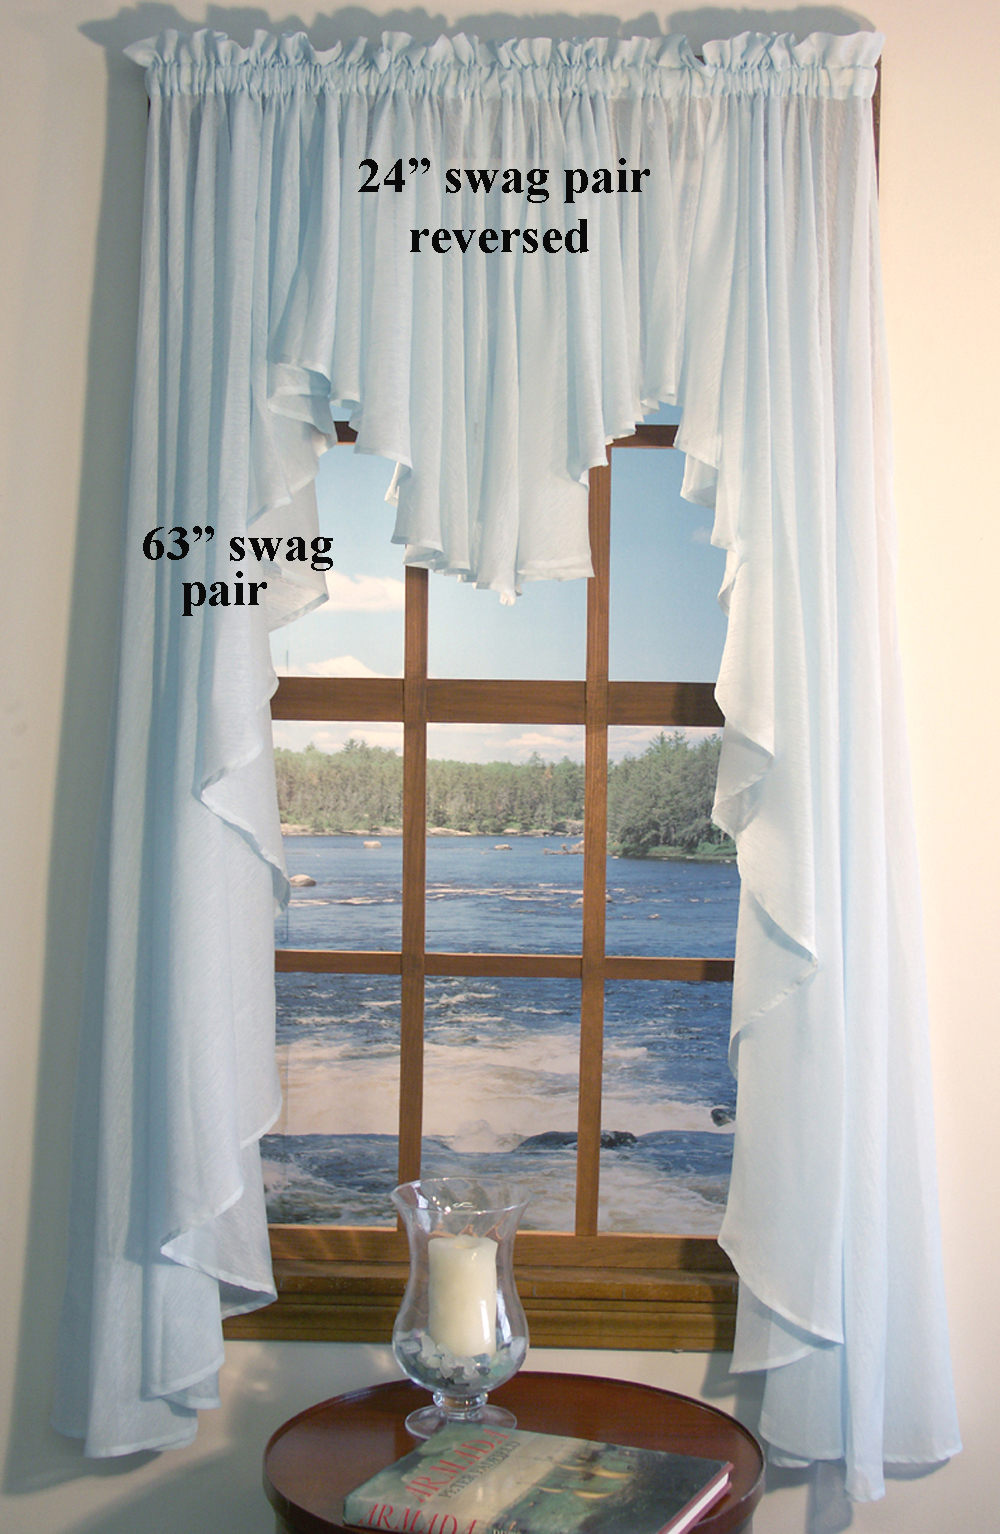 Full Bodied Swag – Sea Glass Regarding Forest Valance And Tier Pair Curtains (View 12 of 20)